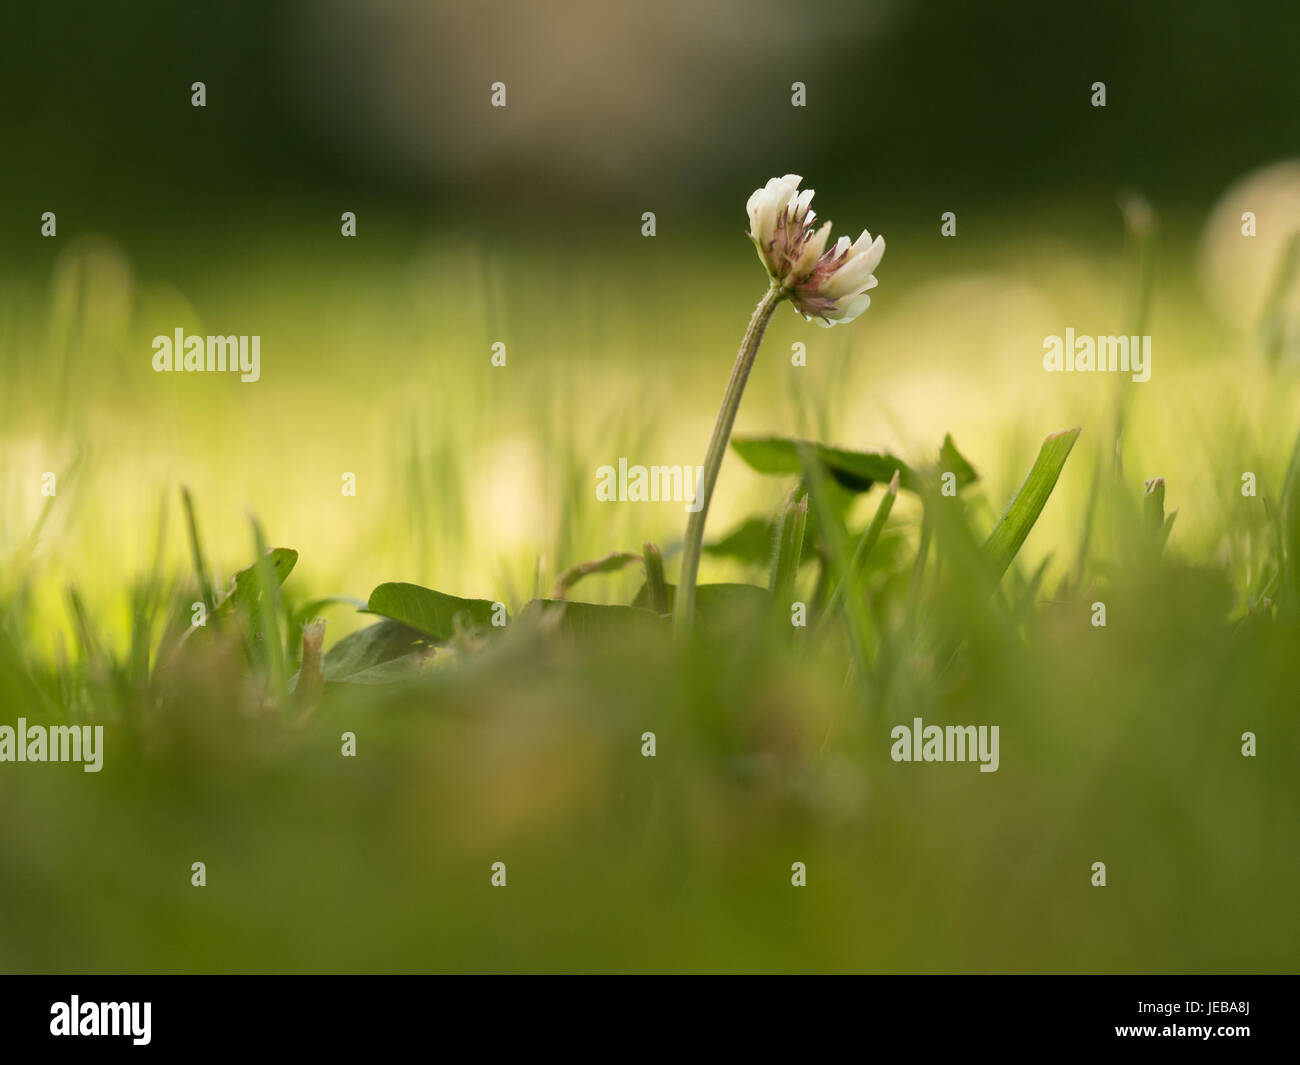 Blooming white clover in the shadow and blurred background with sunlight, low depth of field - Stock Image